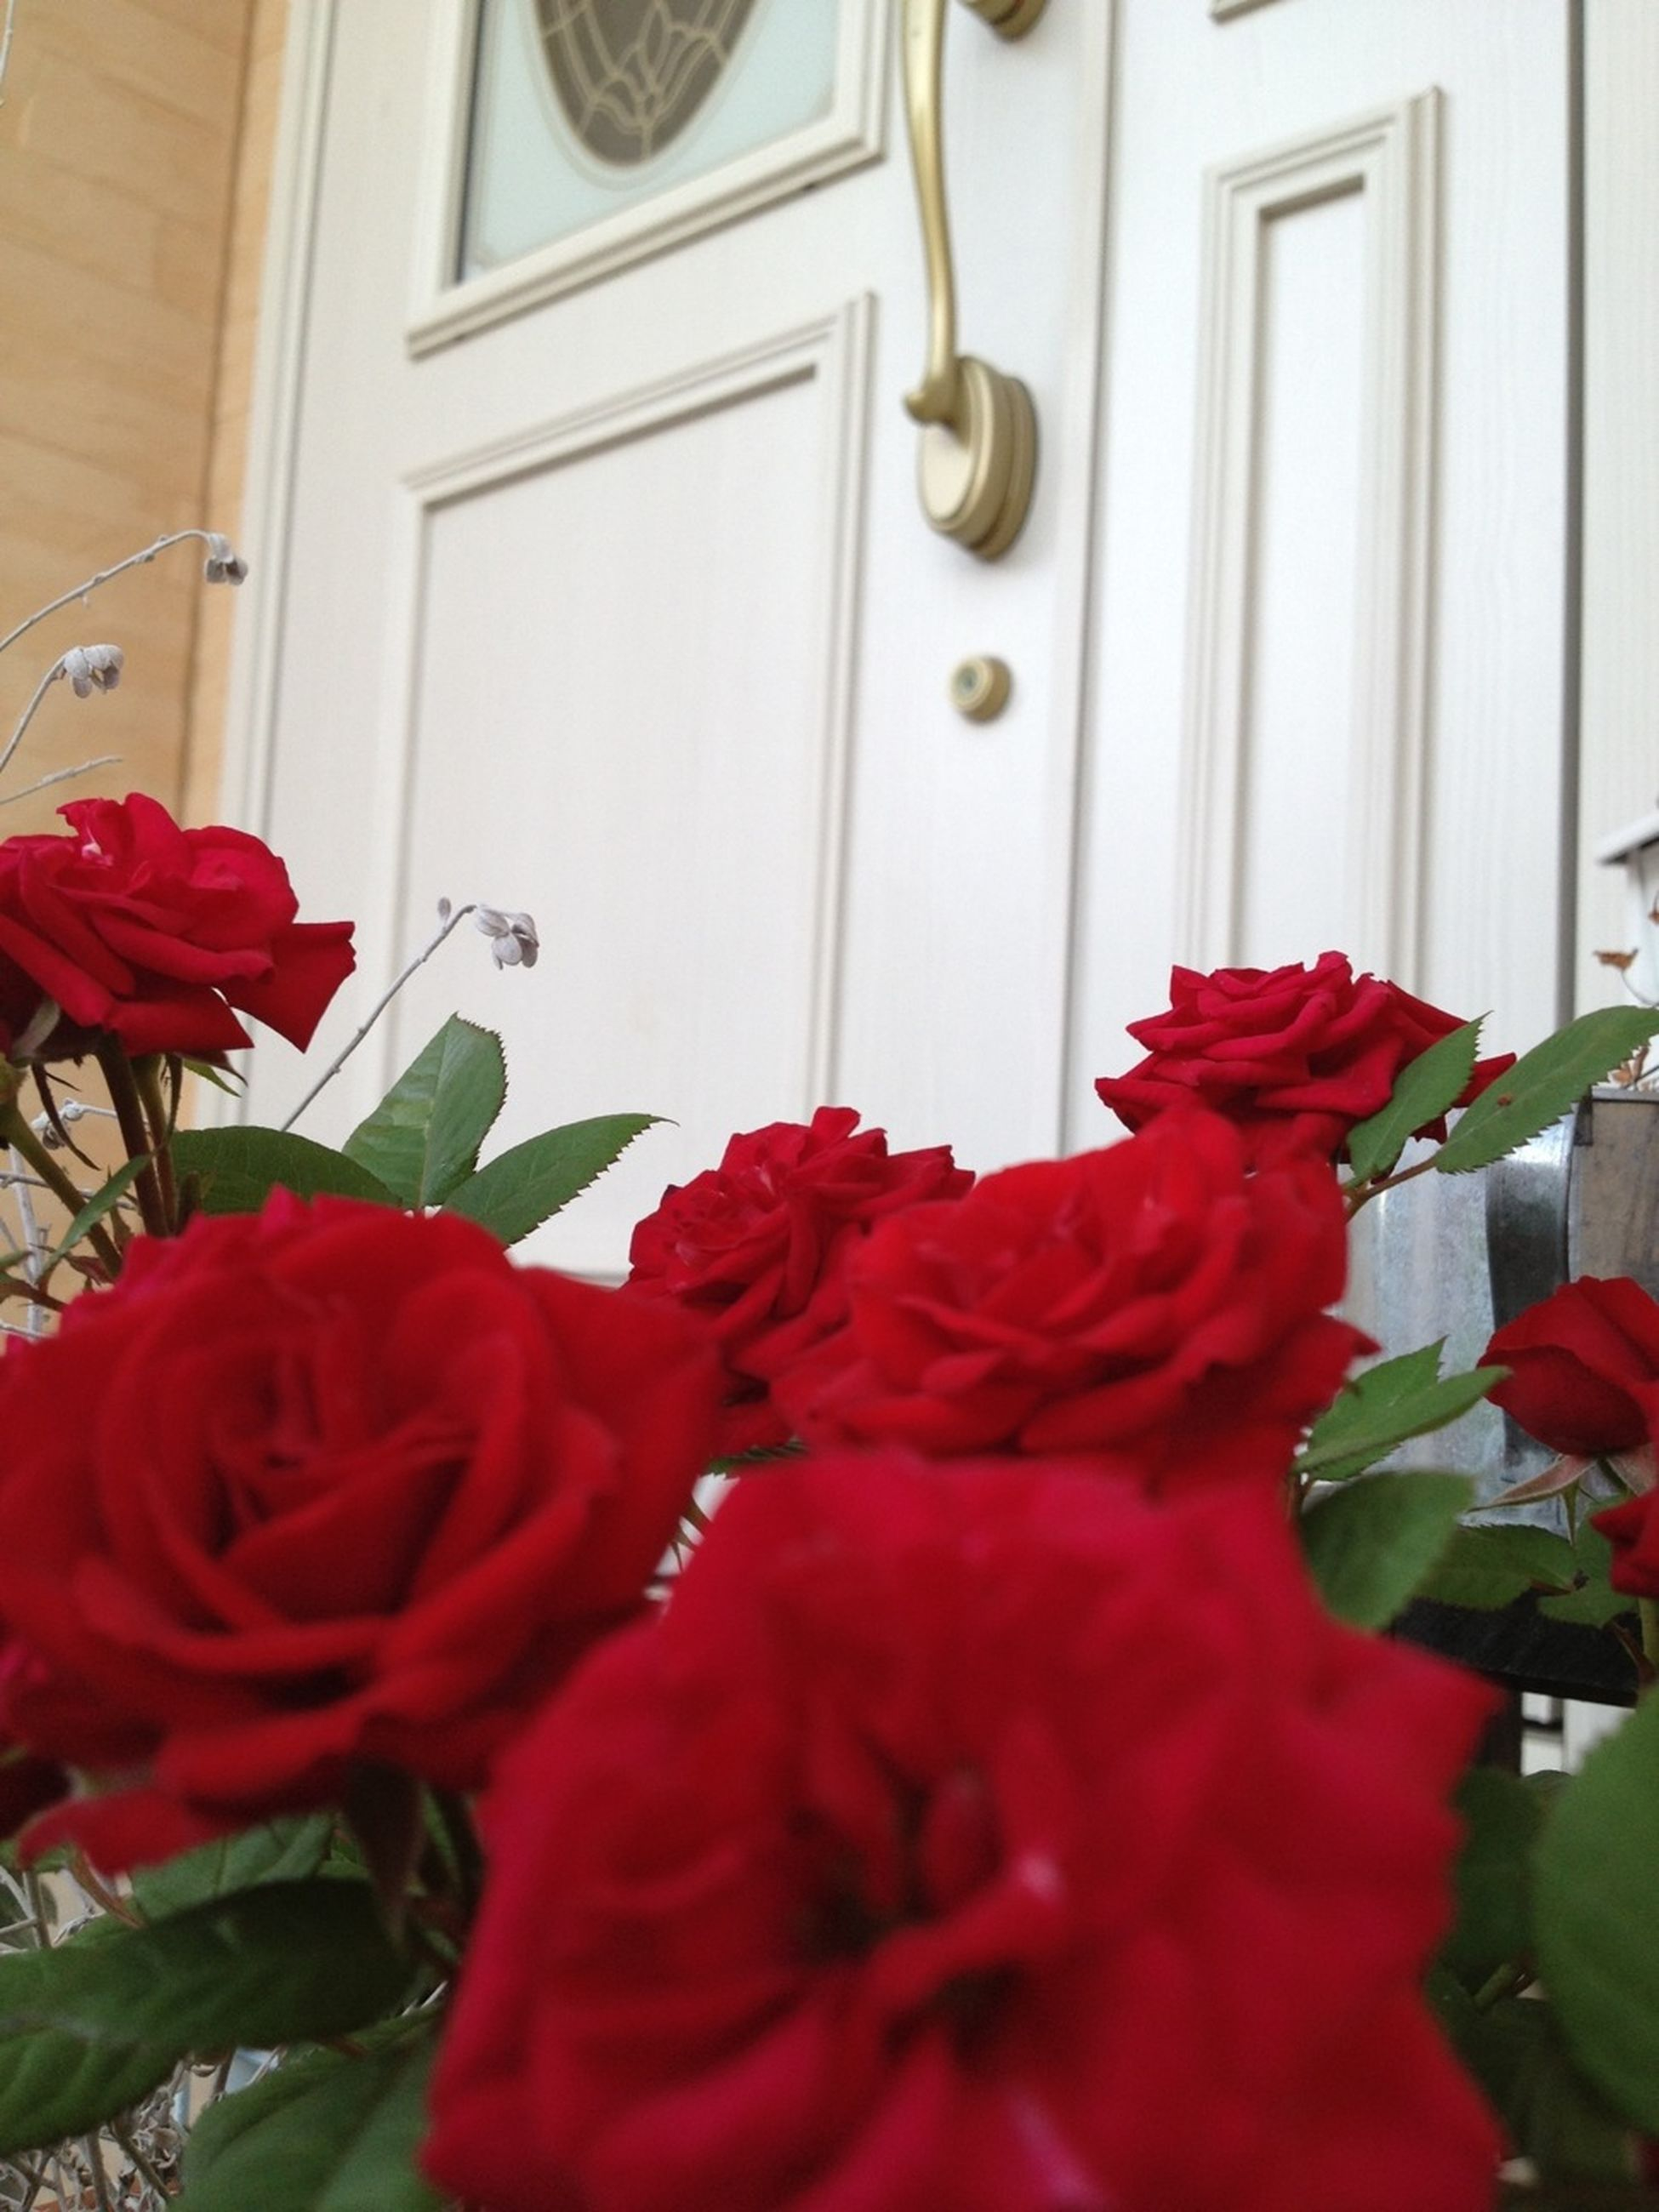 flower, red, petal, fragility, freshness, plant, growth, flower head, leaf, beauty in nature, blooming, nature, built structure, rose - flower, indoors, potted plant, house, door, day, no people